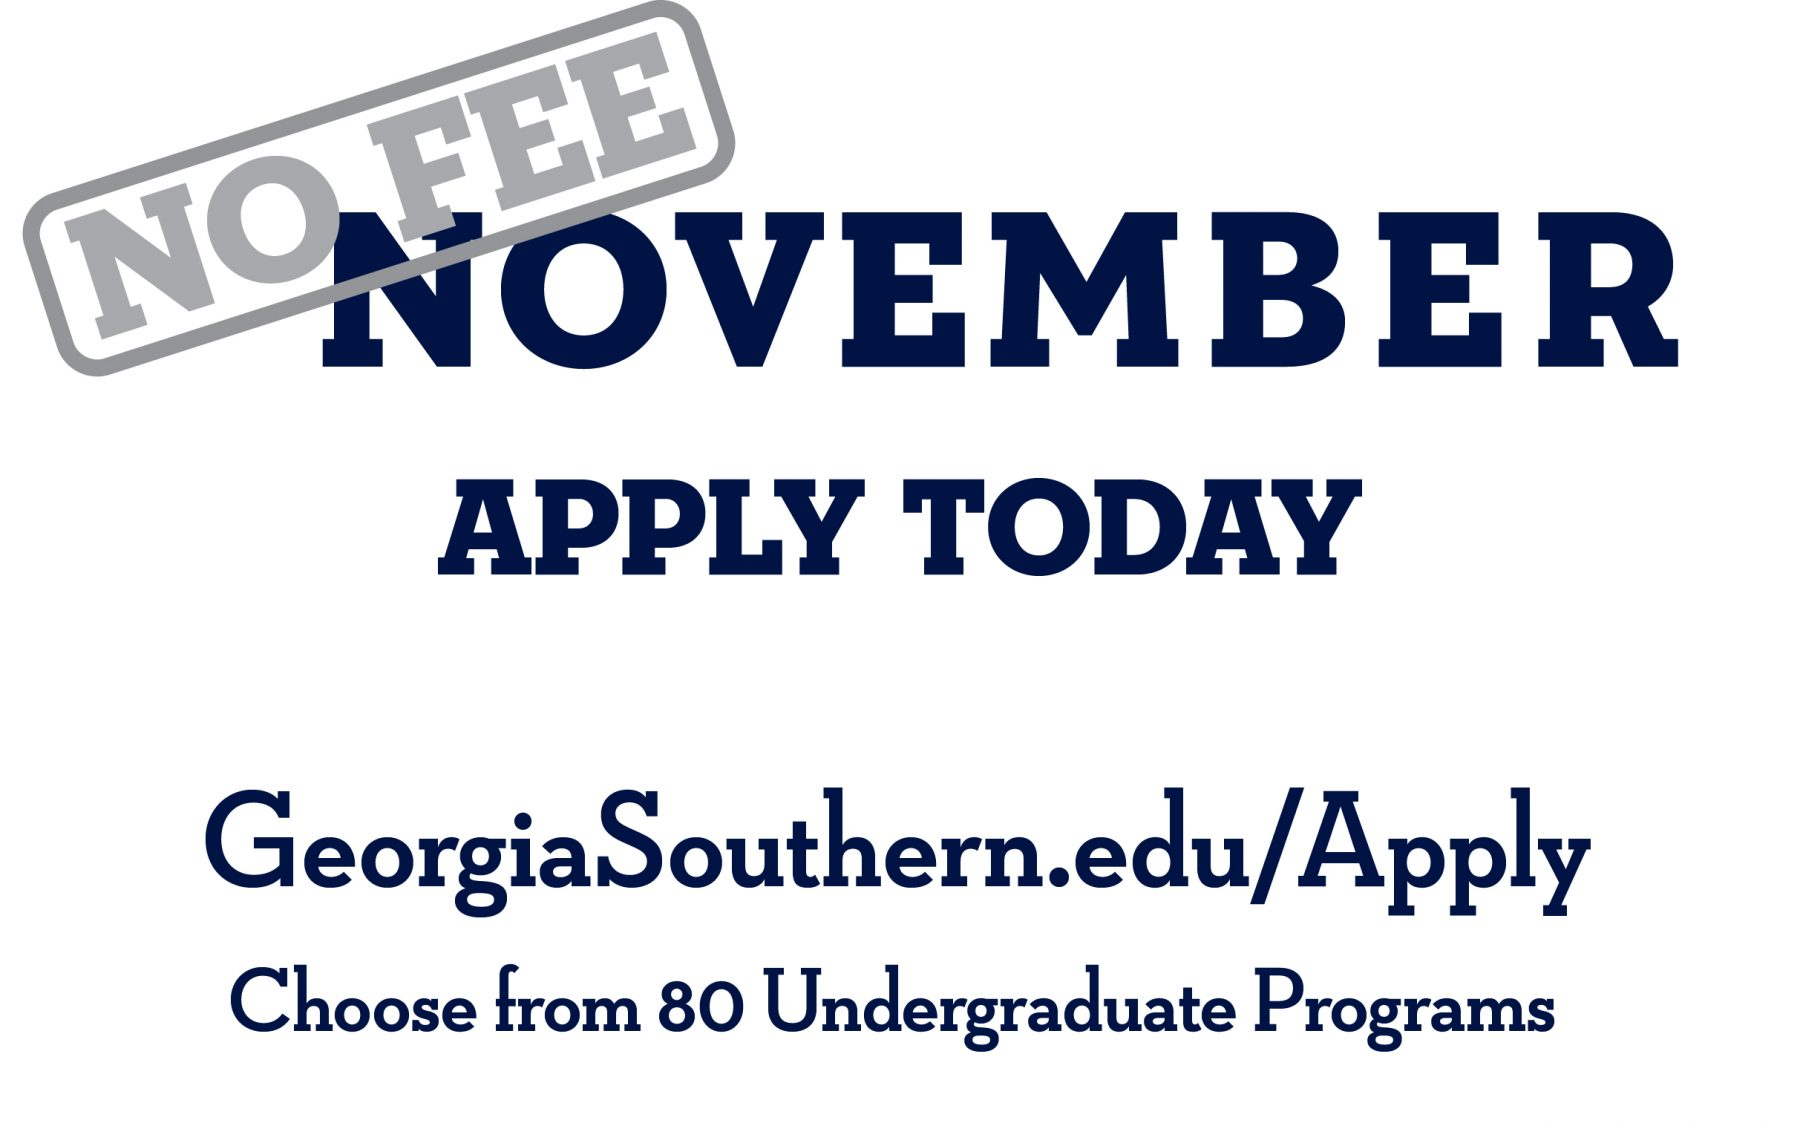 No-Fee November Apply